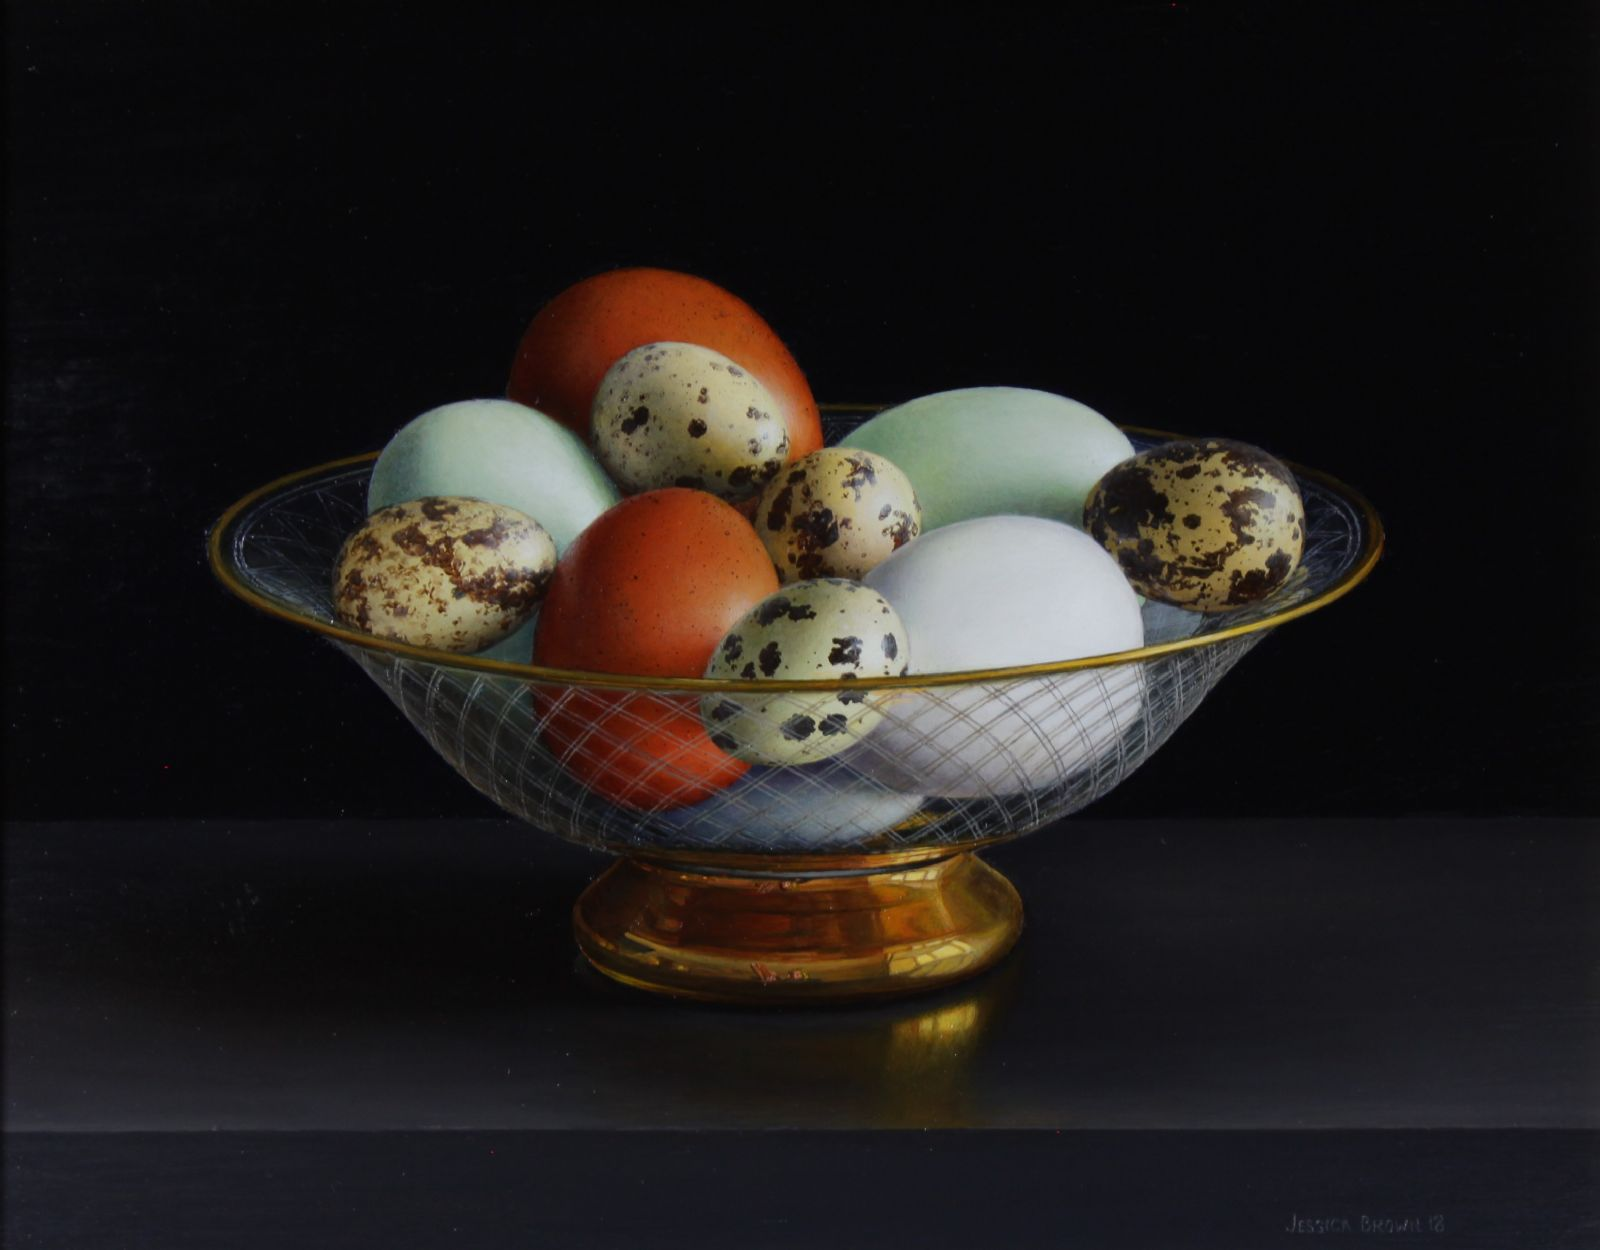 Still Life with Burford Brown, Cotswold Legbar and Quails Eggs in an Engraved and Gilded Glass Bowl by Jessica Brown